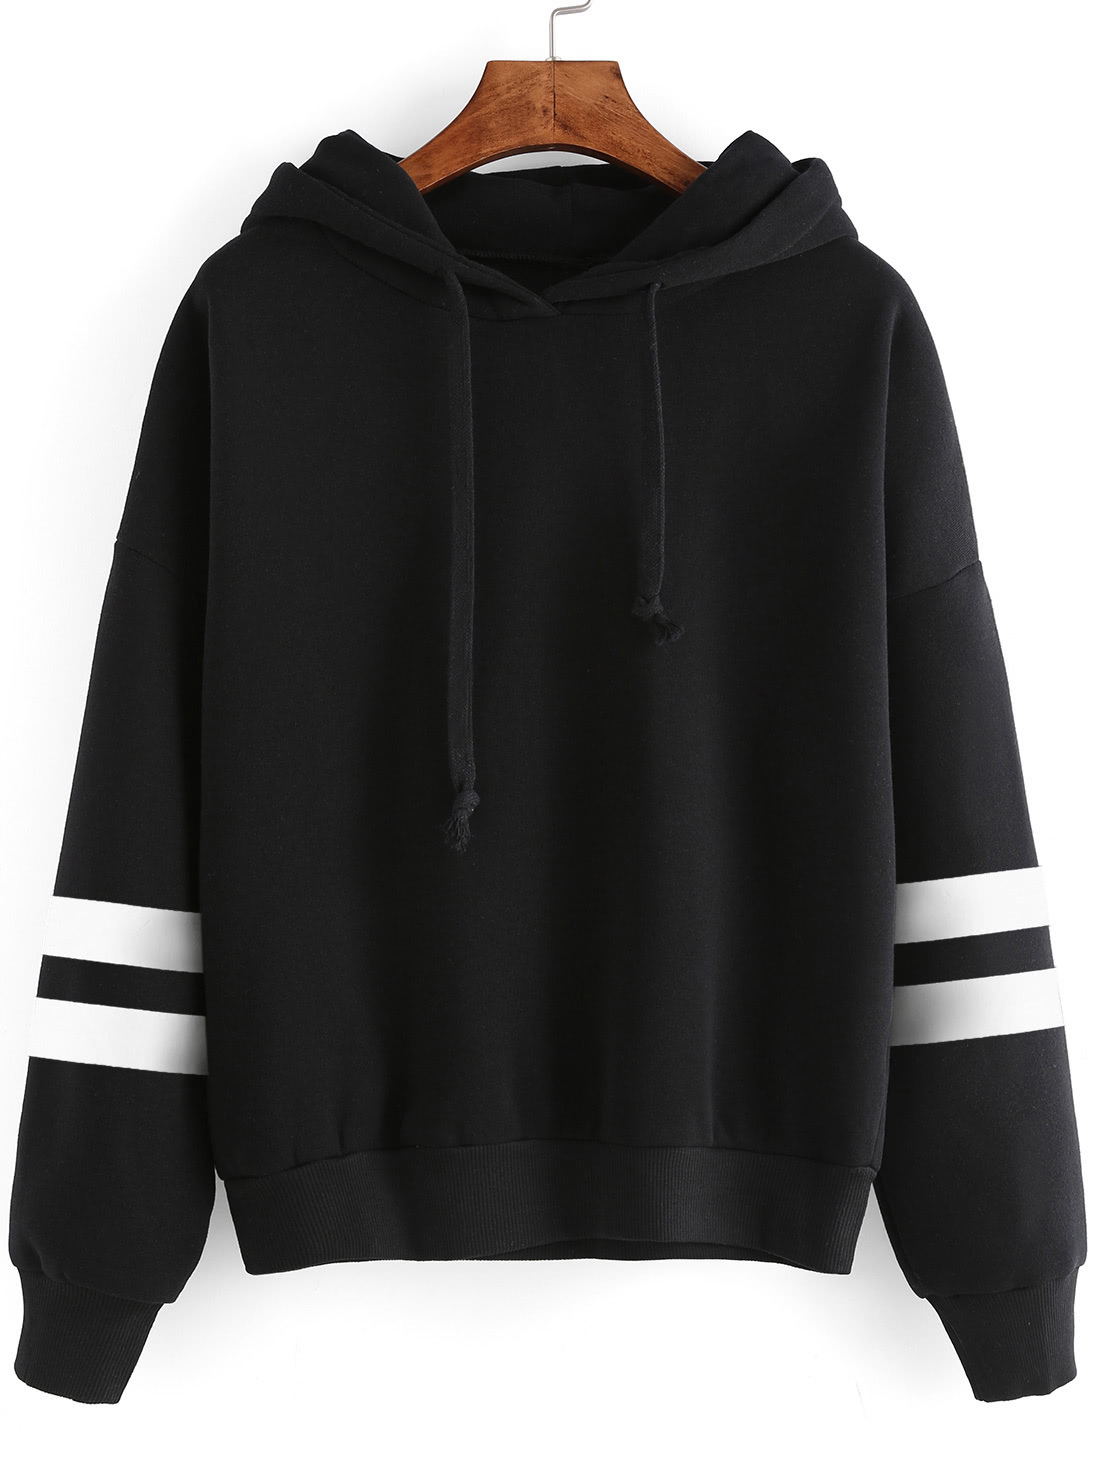 Black Drop Shoulder Varsity Striped Hooded Sweatshirt